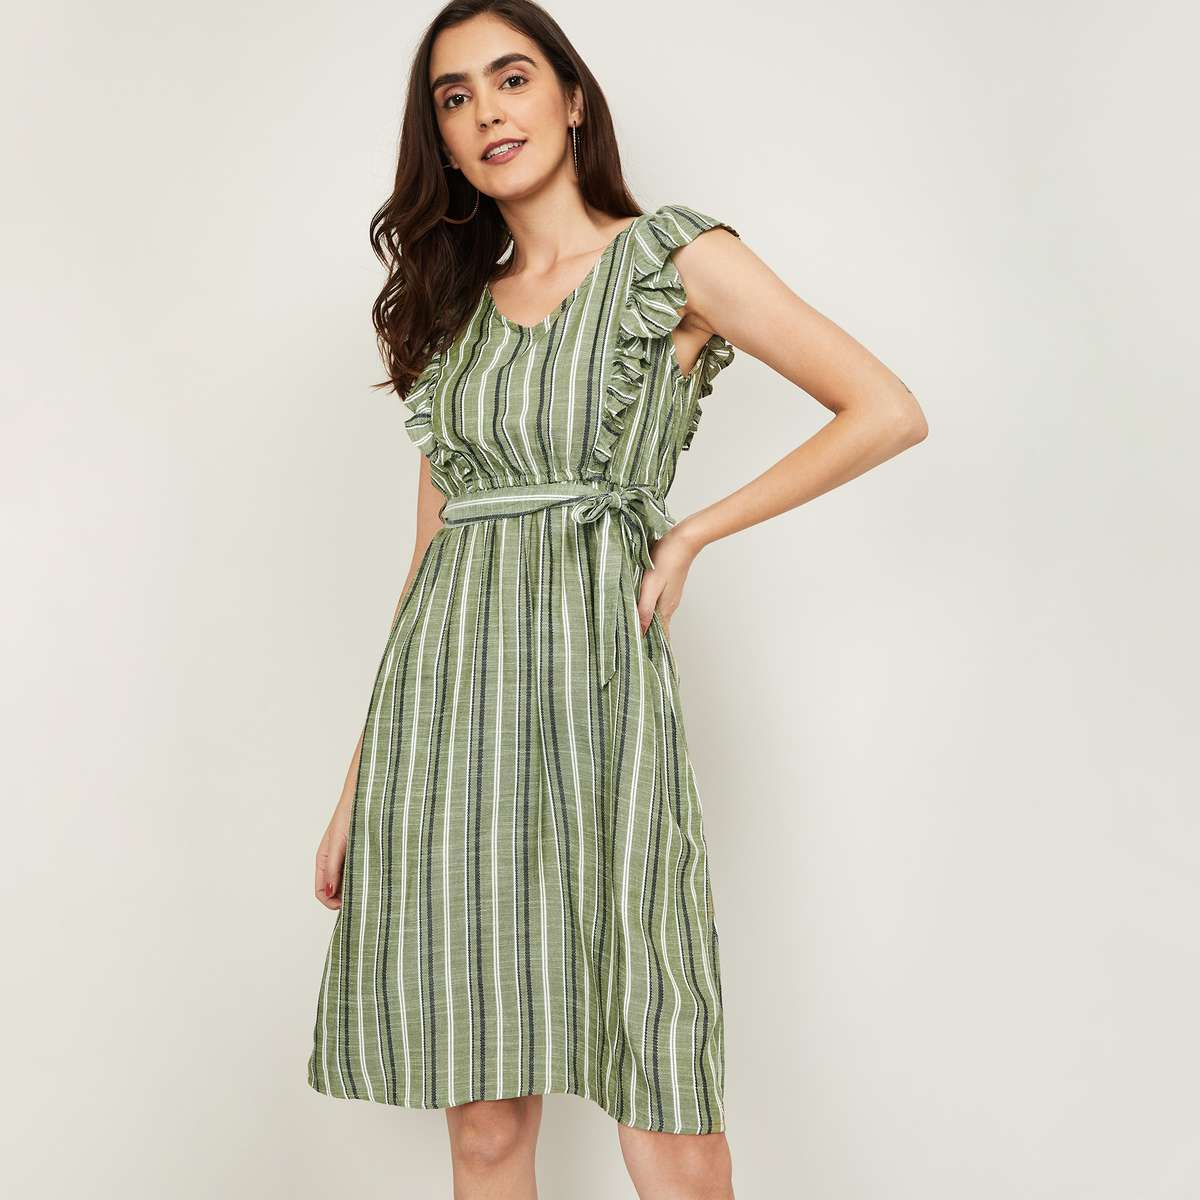 5.FAME FOREVER Women Striped A-line Dress